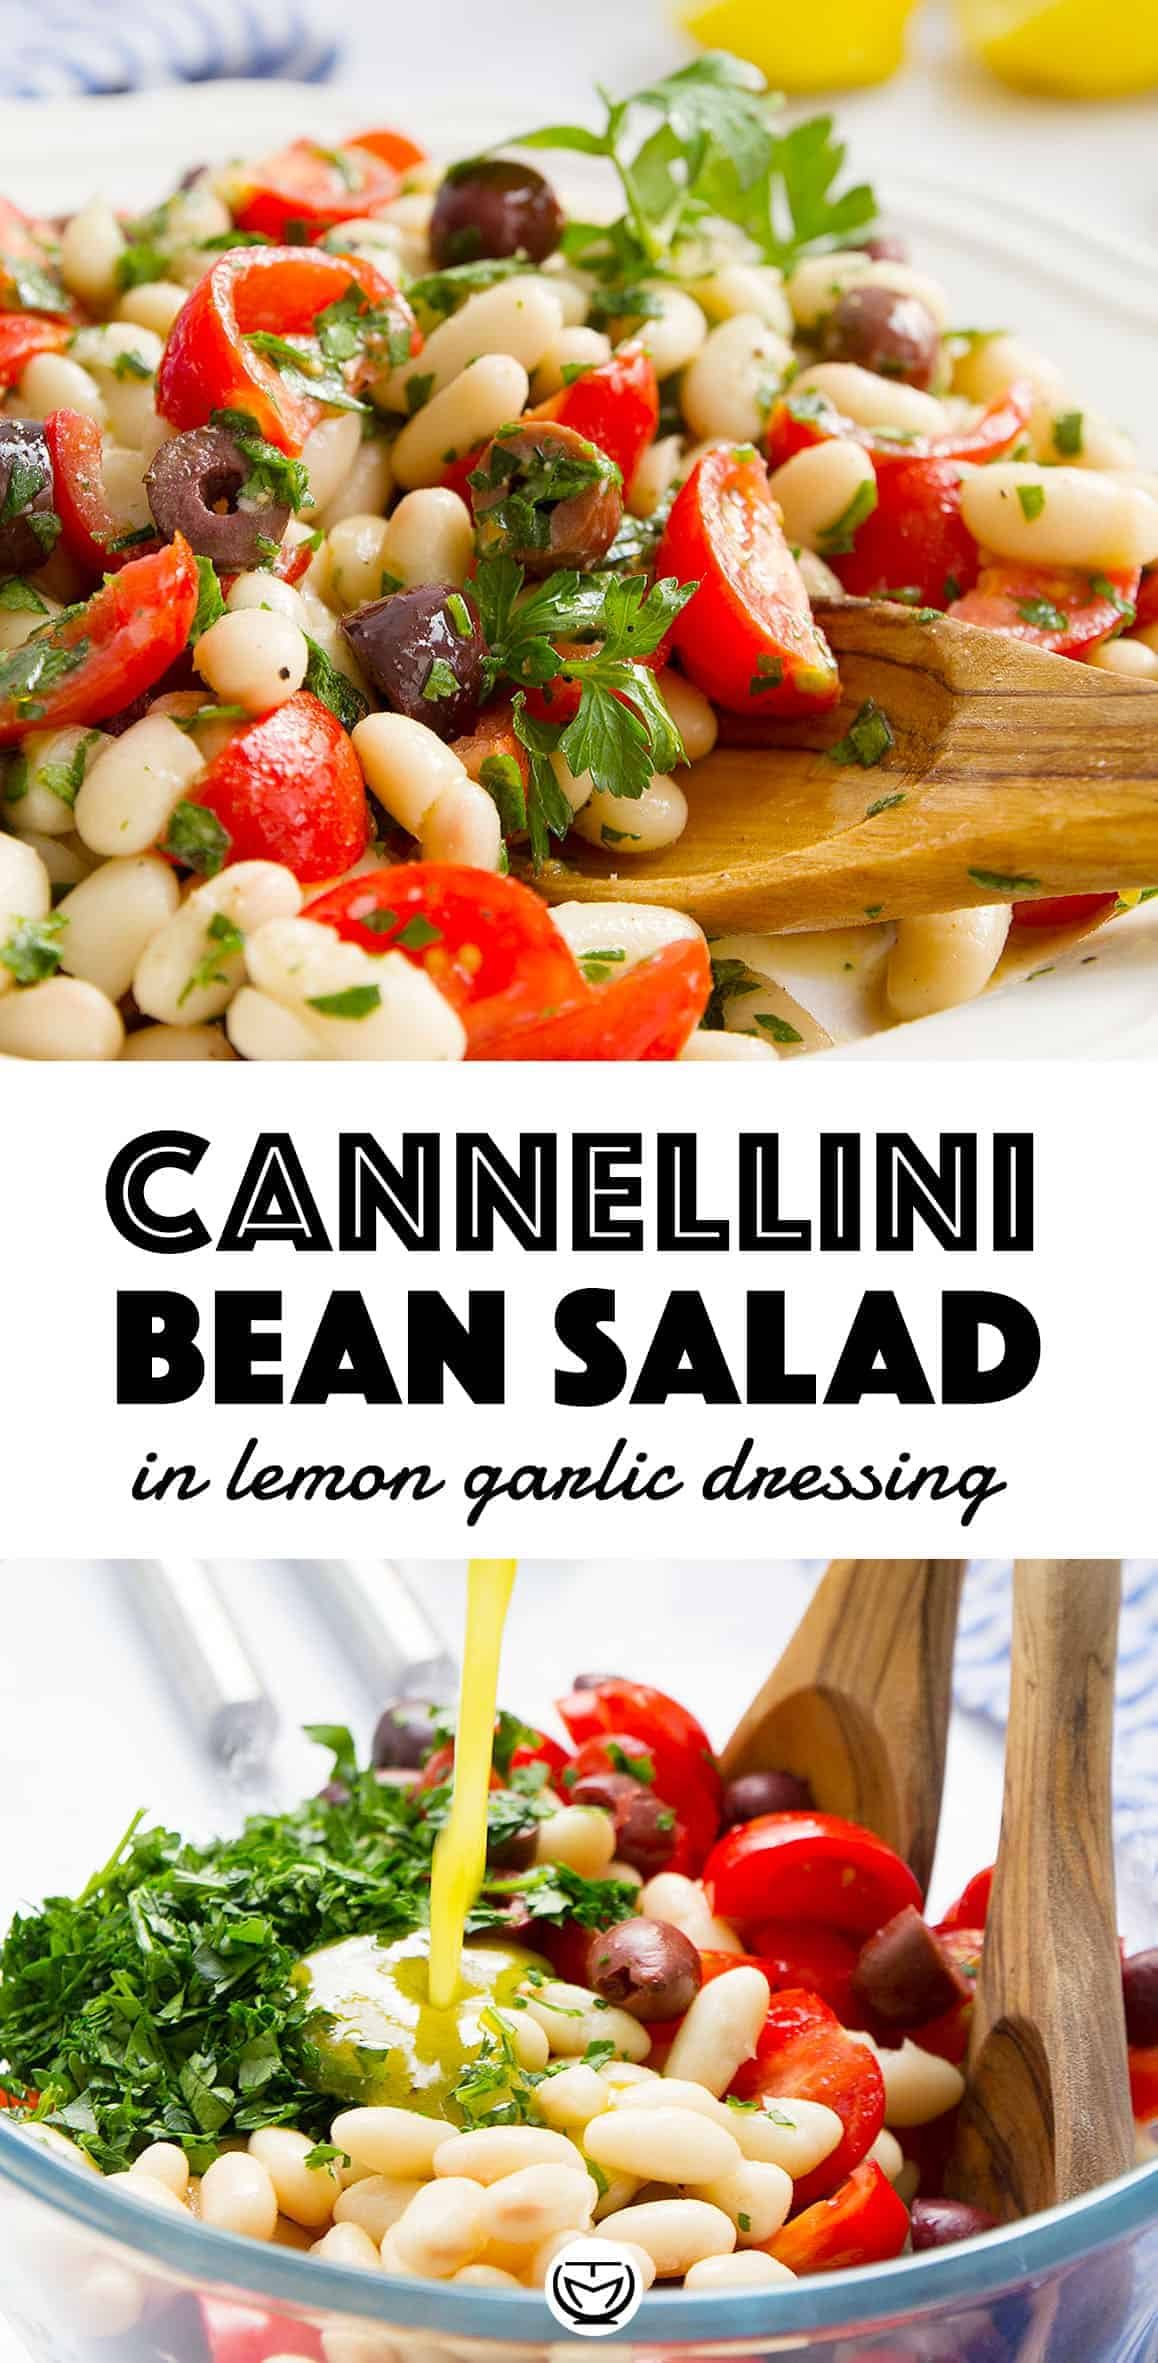 This delicious cannellini bean salad packs protein and big flavors in less than 10 minutes! #beansalads #veganrecipes